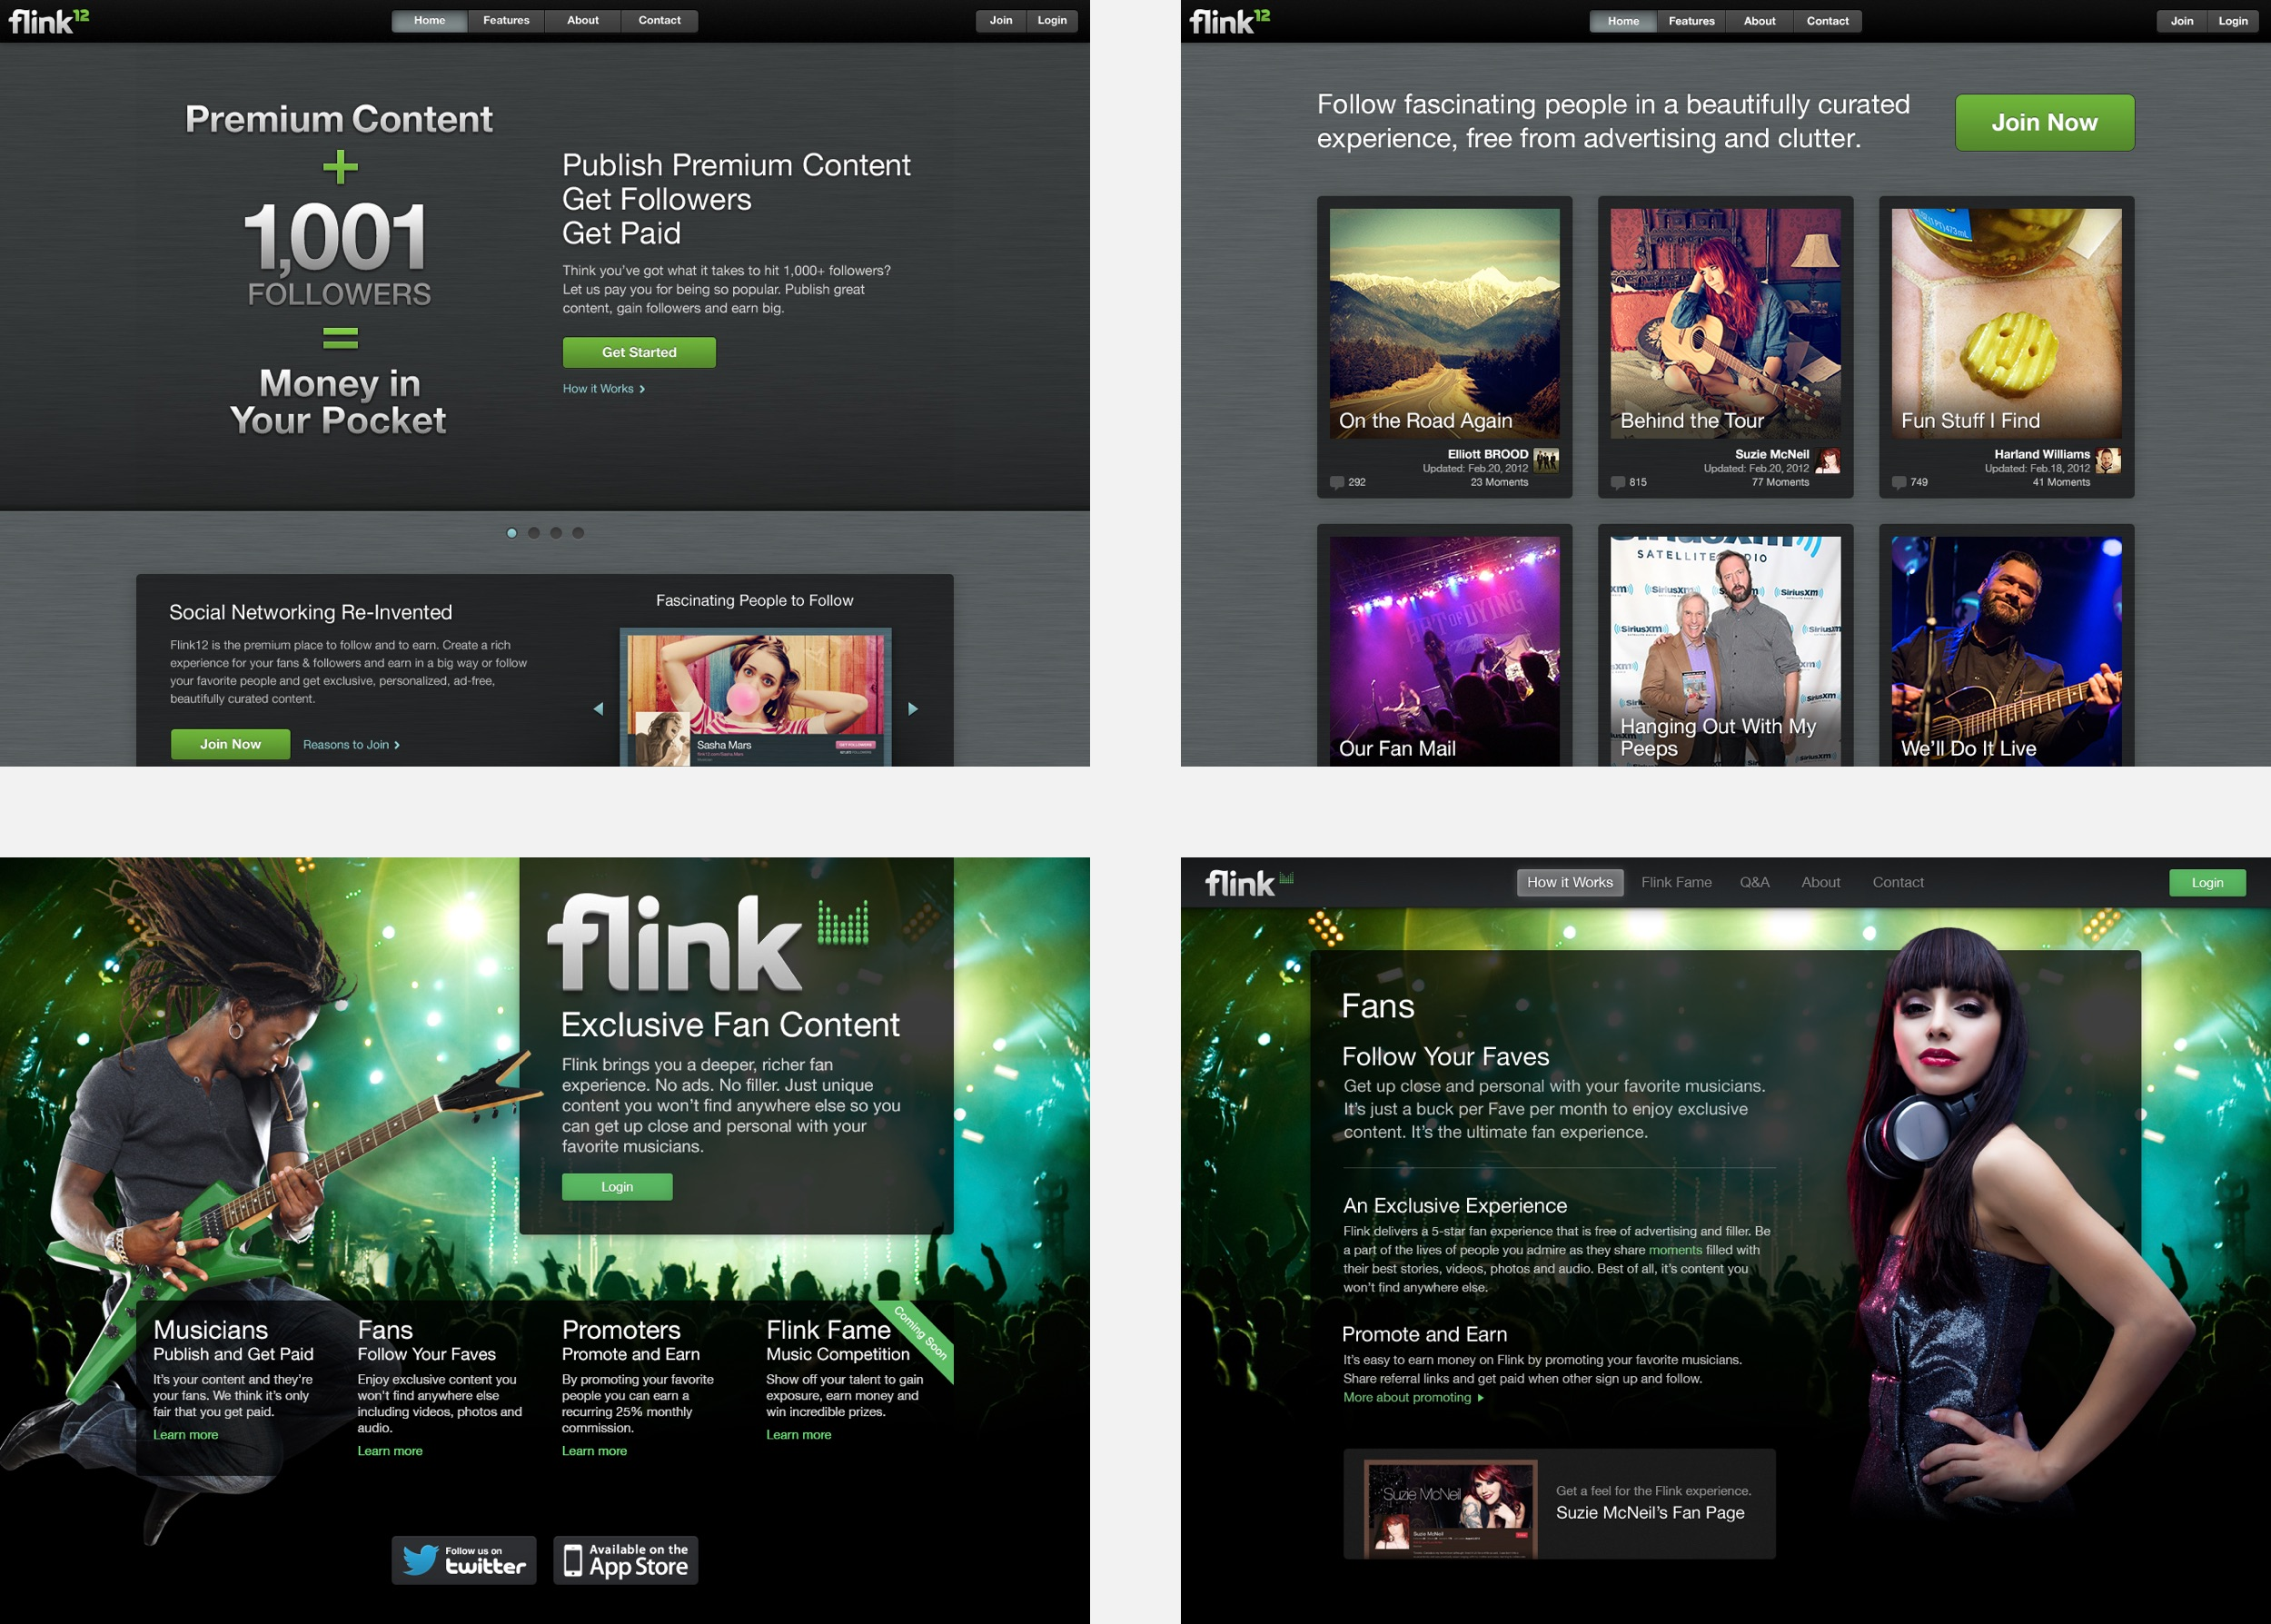 Some of the promo site designs throughout the various stages of the app.